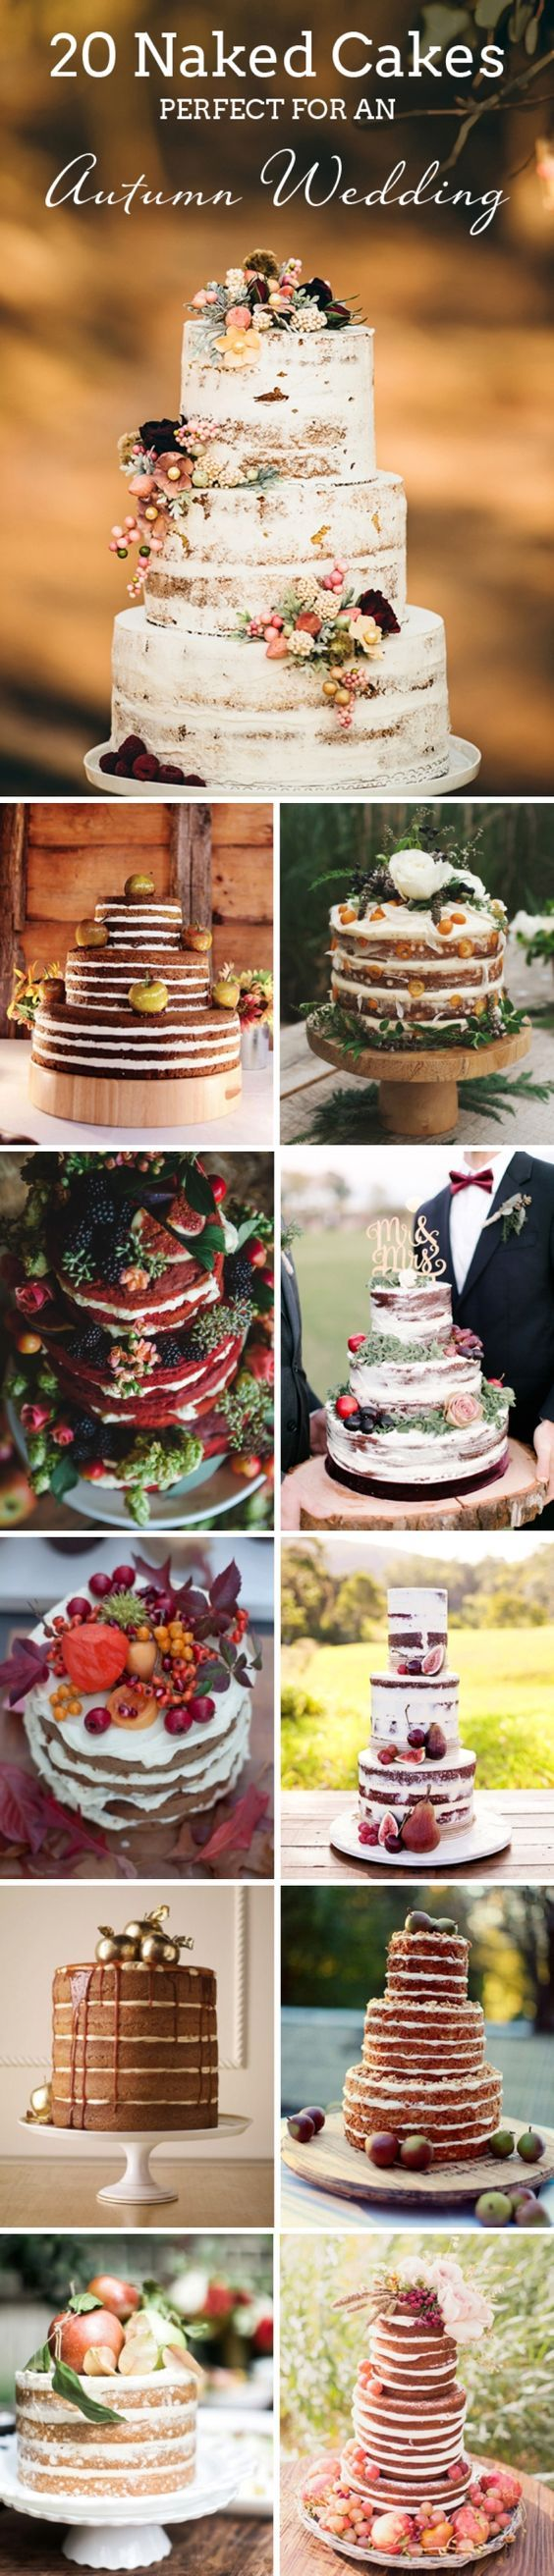 Great Fall Wedding Ideas for Your Big Day